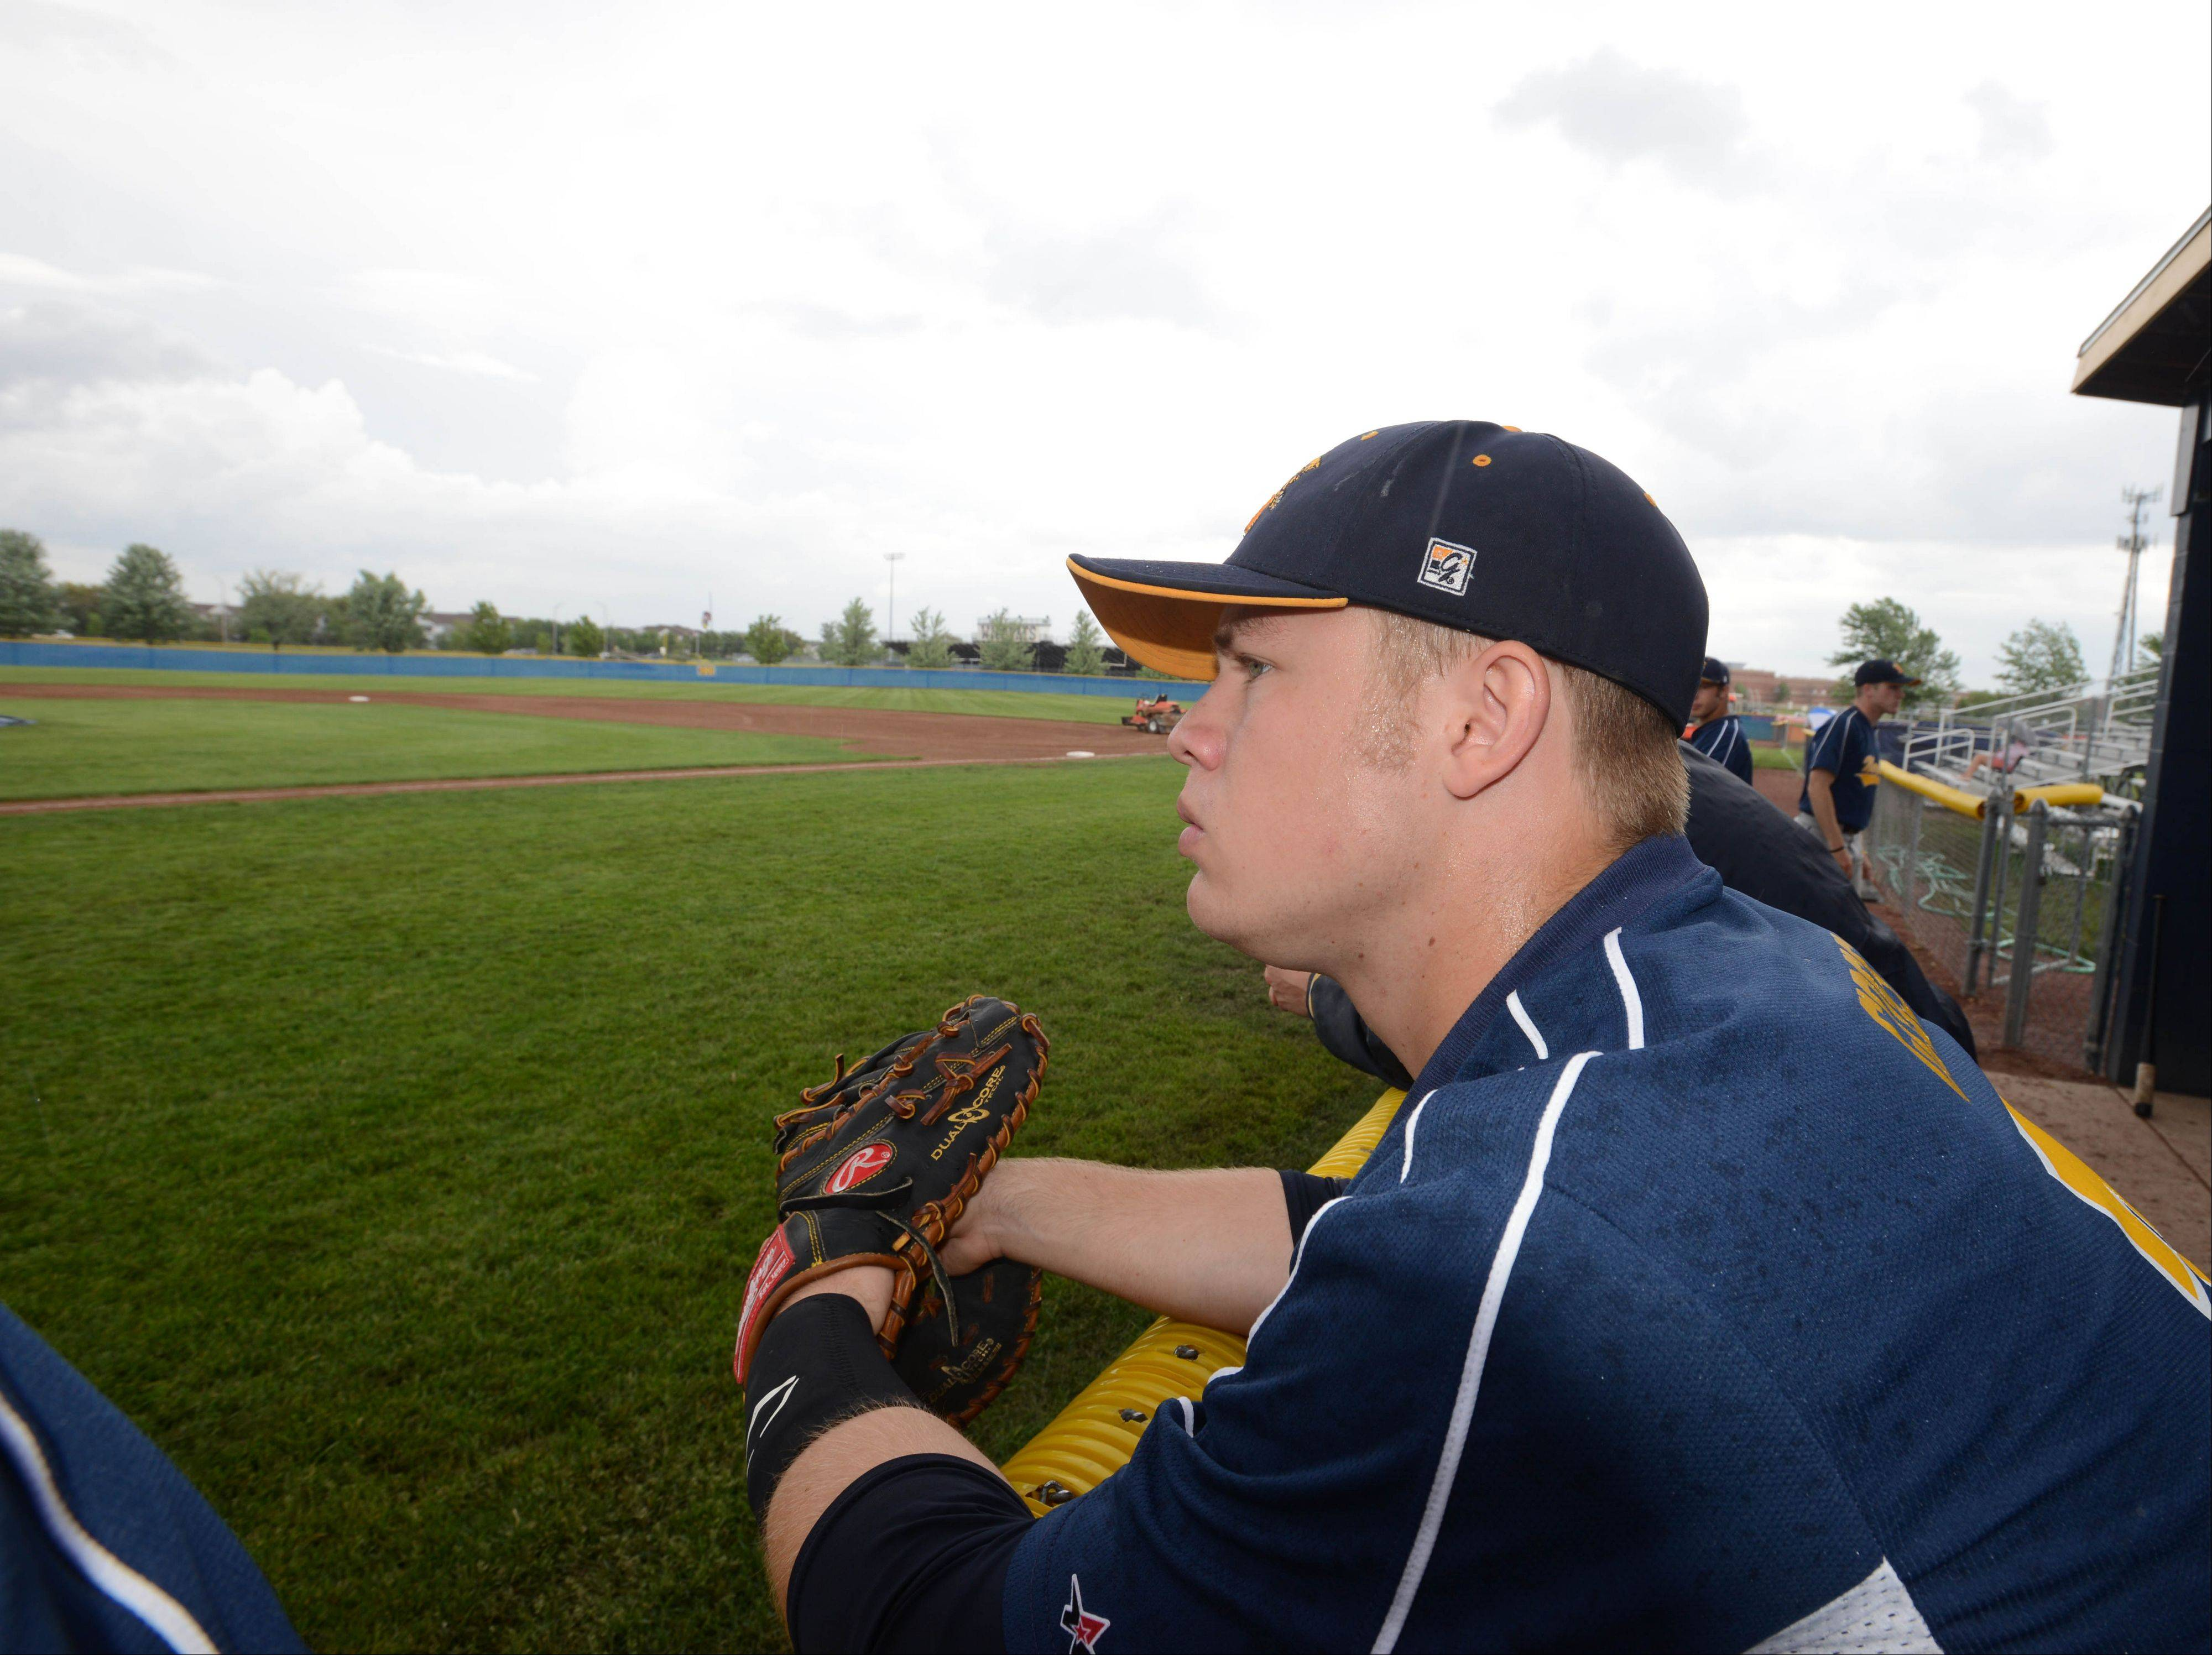 Dylan Goss of Neuqua looks glum while waiting for foul weather to pass before the start of the Neuqua Valley vs. Plainfield North Class 4A sectional semifinal game Thursday.